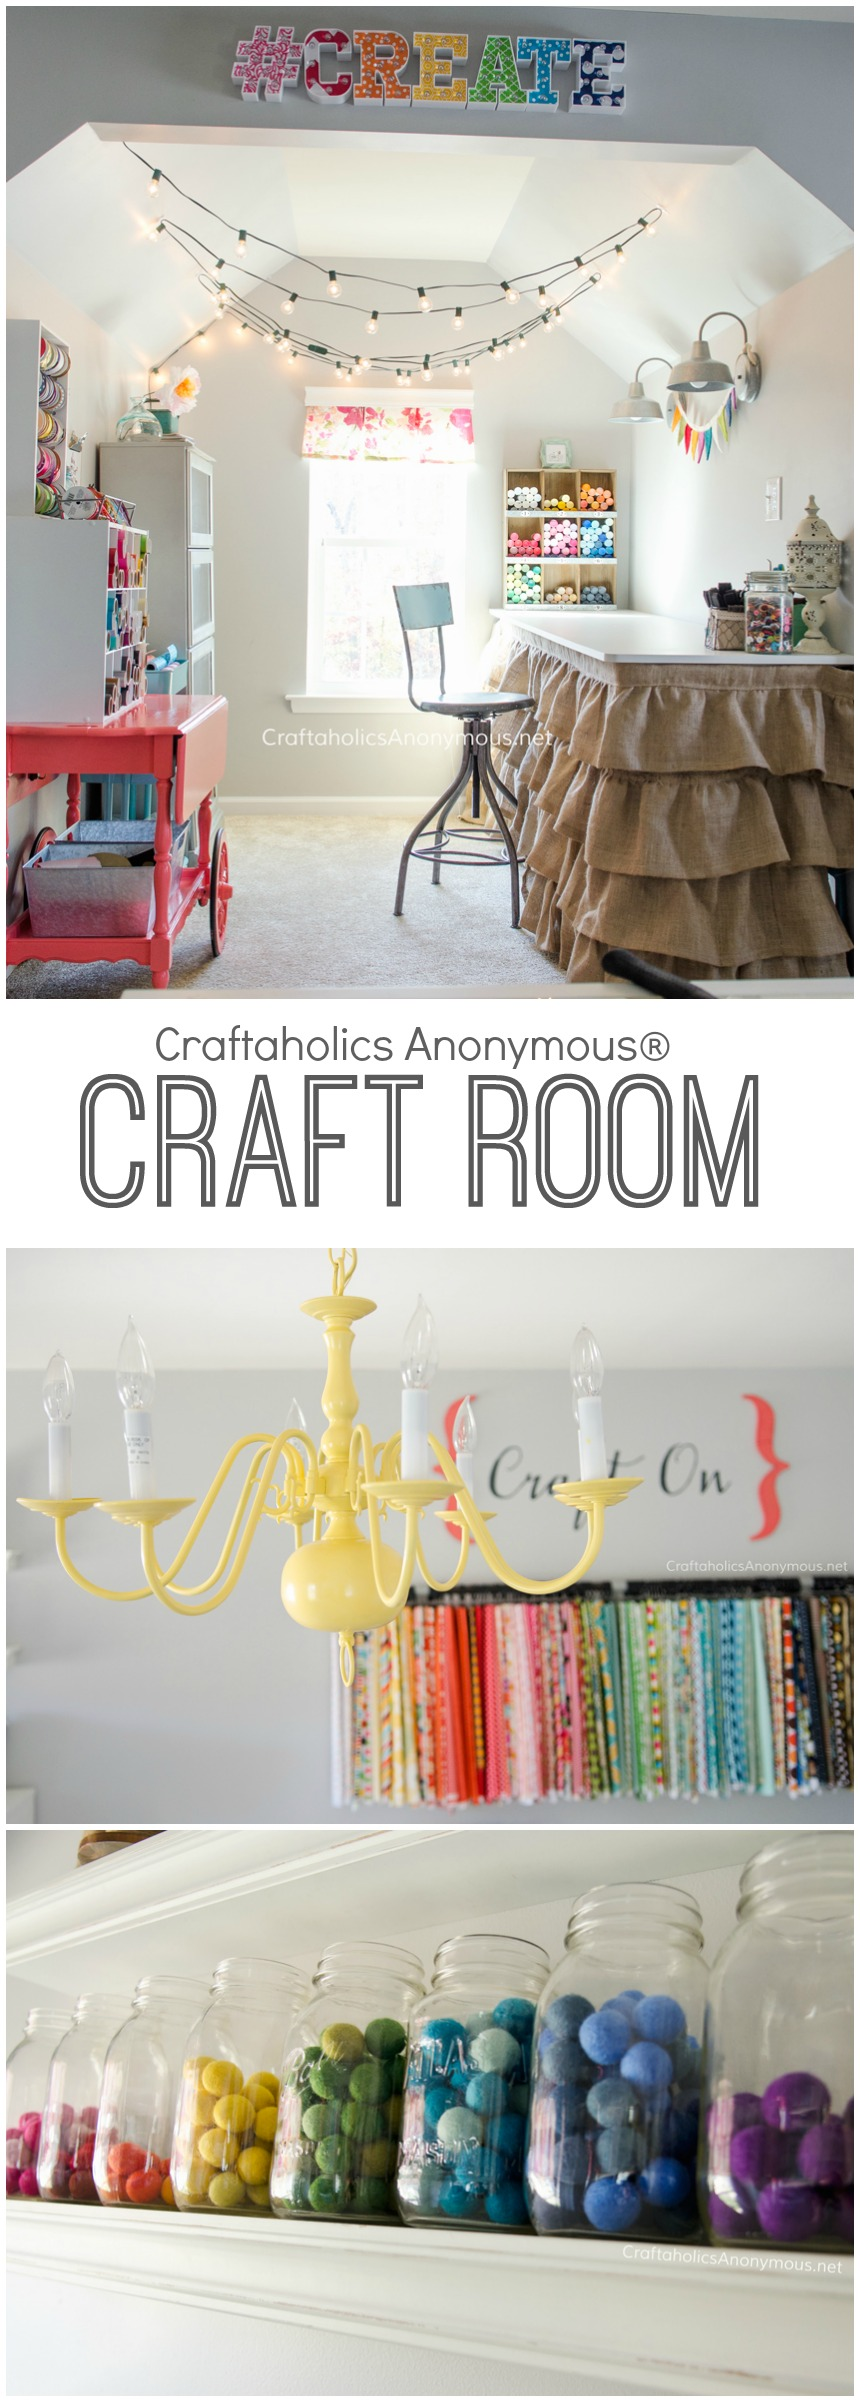 Dream Craft Room with loads of awesome craft room storage and organization ideas! a MUST SEE craft room! www.CraftaholicsAnonymous.net